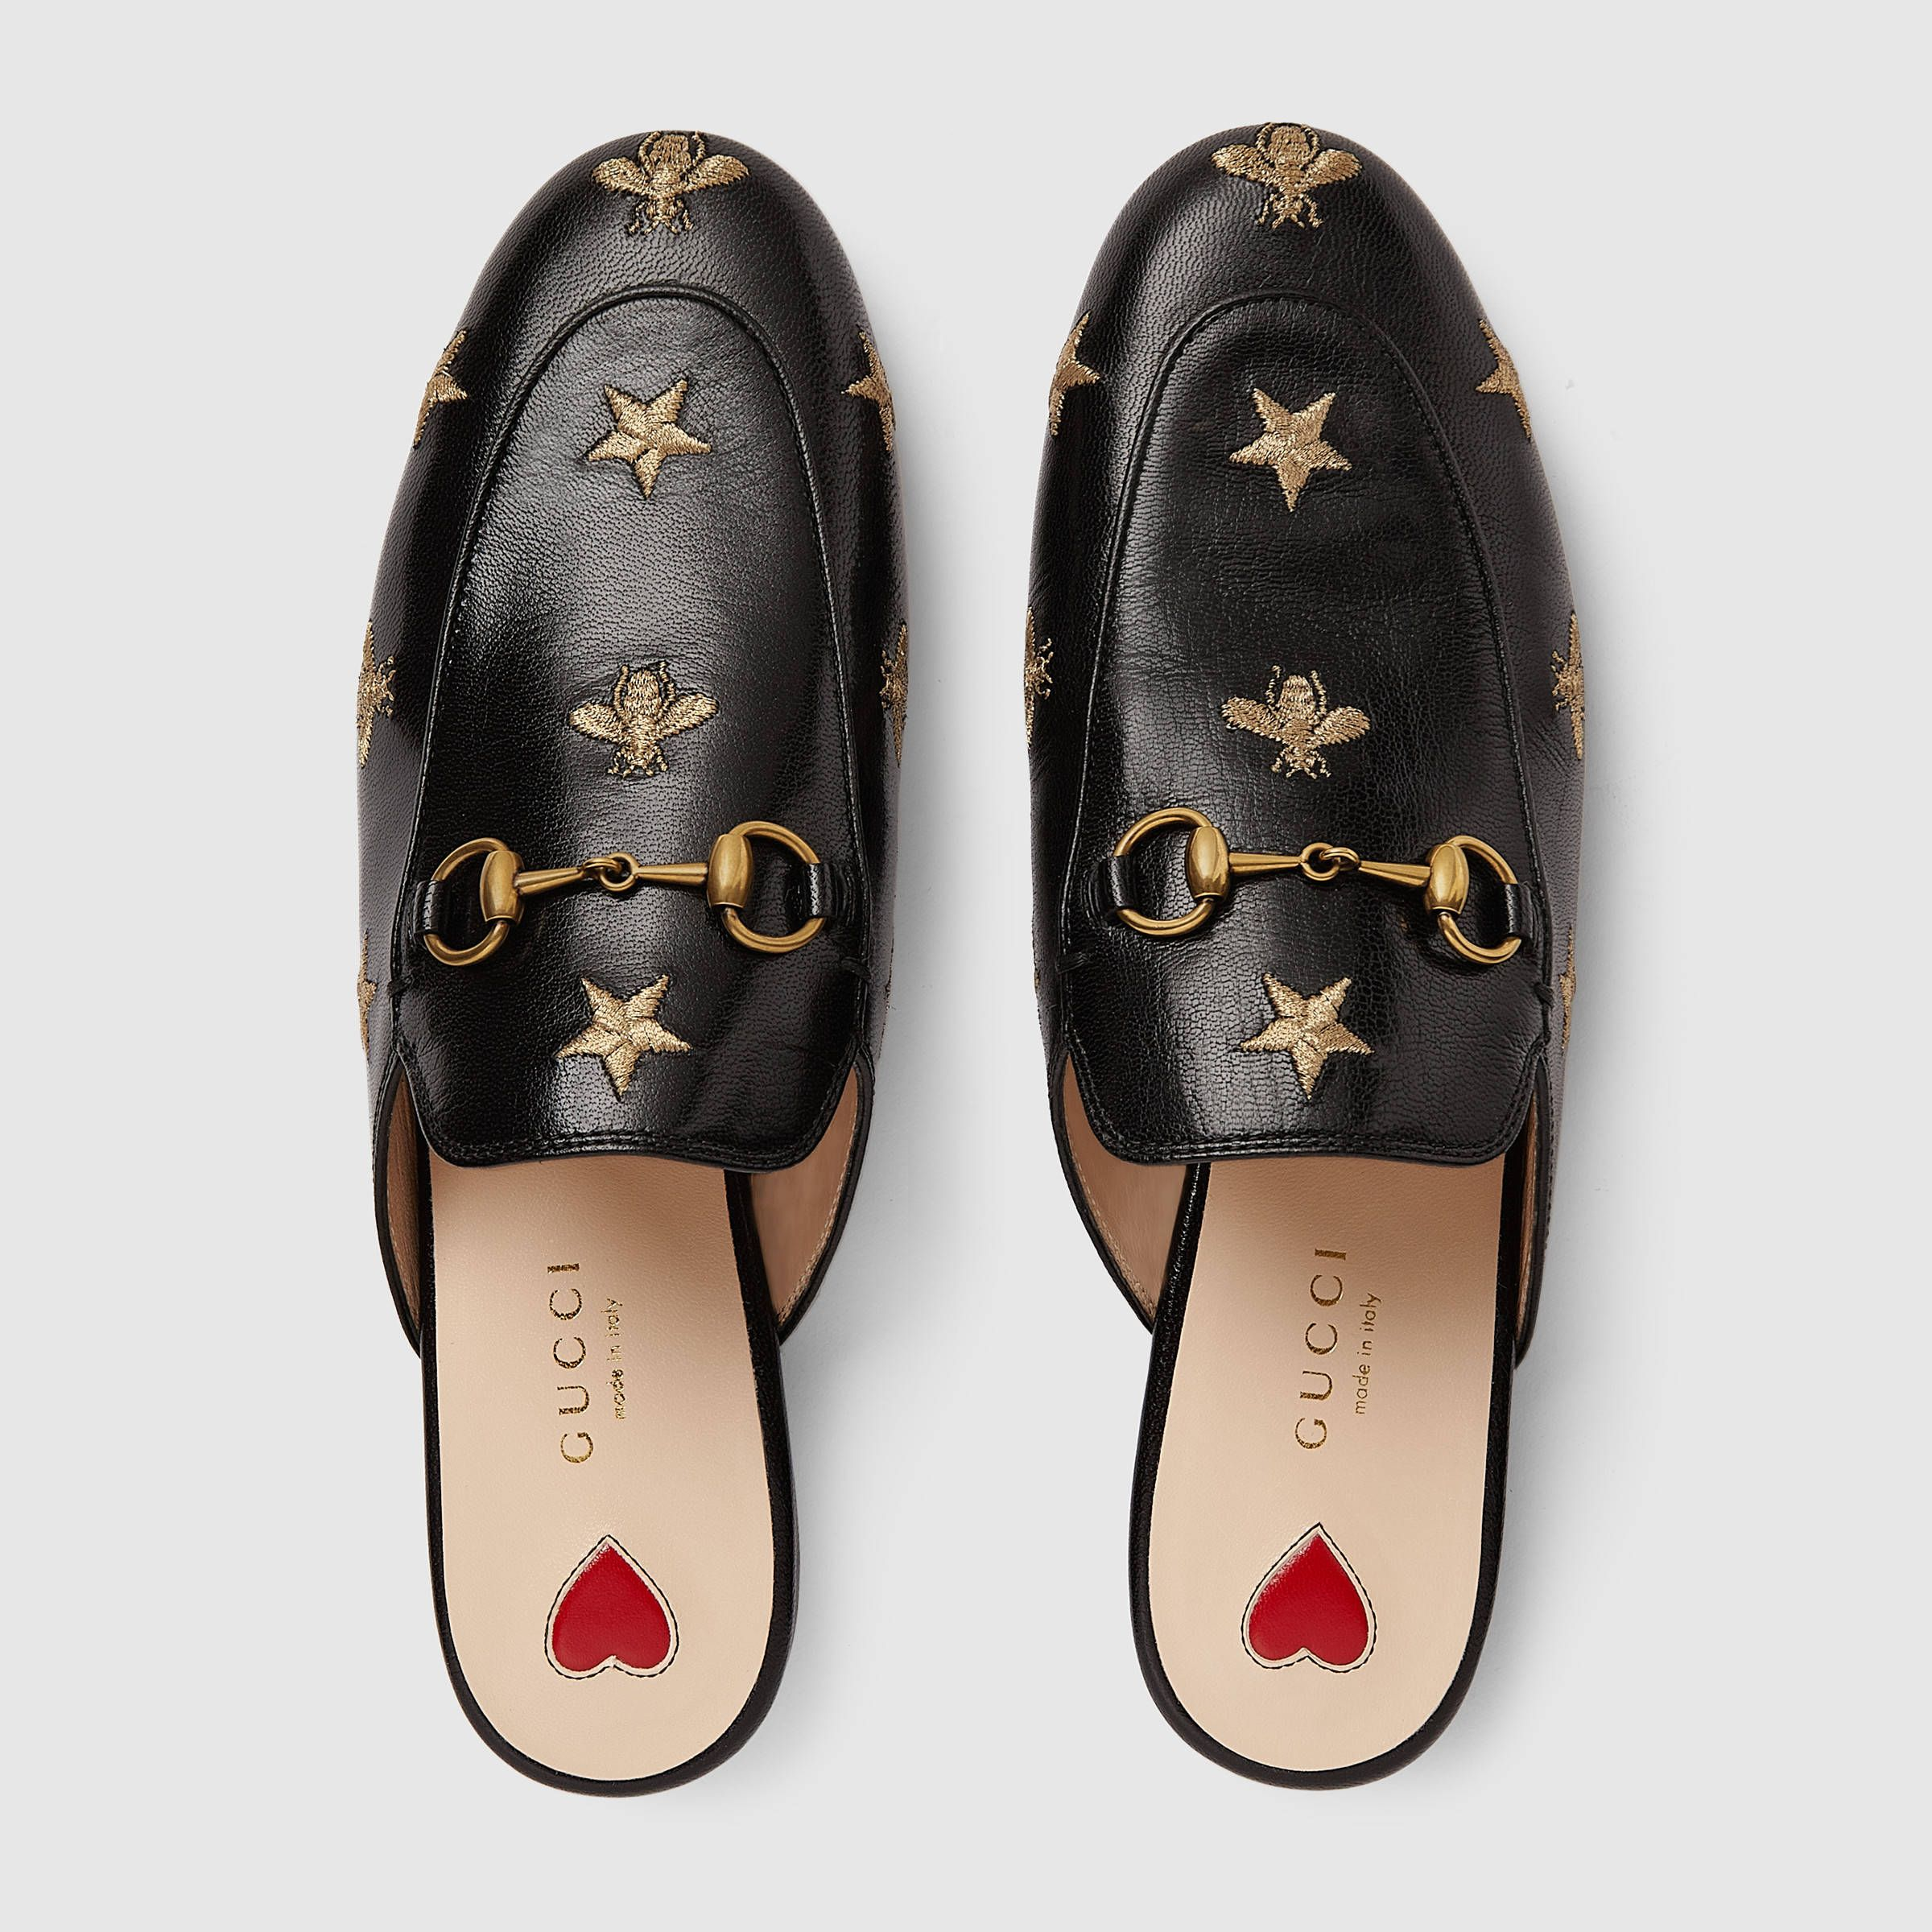 efc716a2167 Gucci Princetown embroidered leather slipper Detail 3